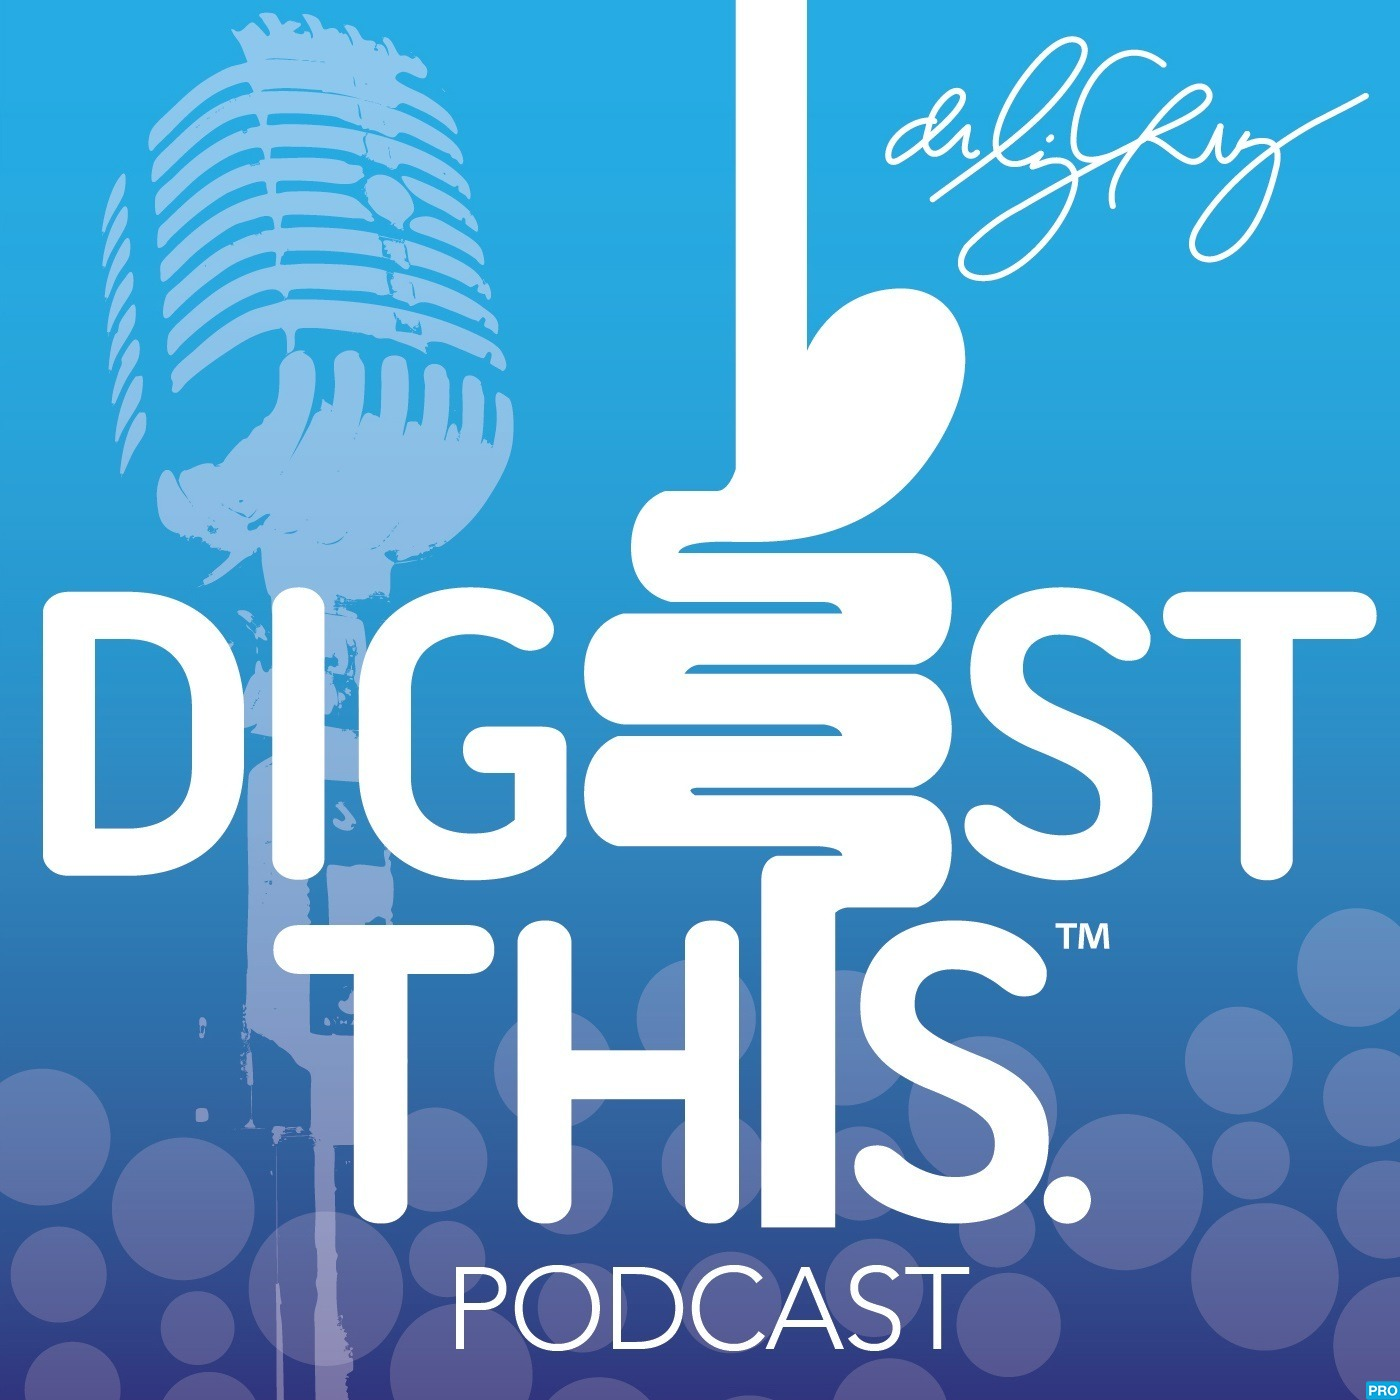 Digest This! Podcast - Dr. Liz Cruz & Tina Nunziato